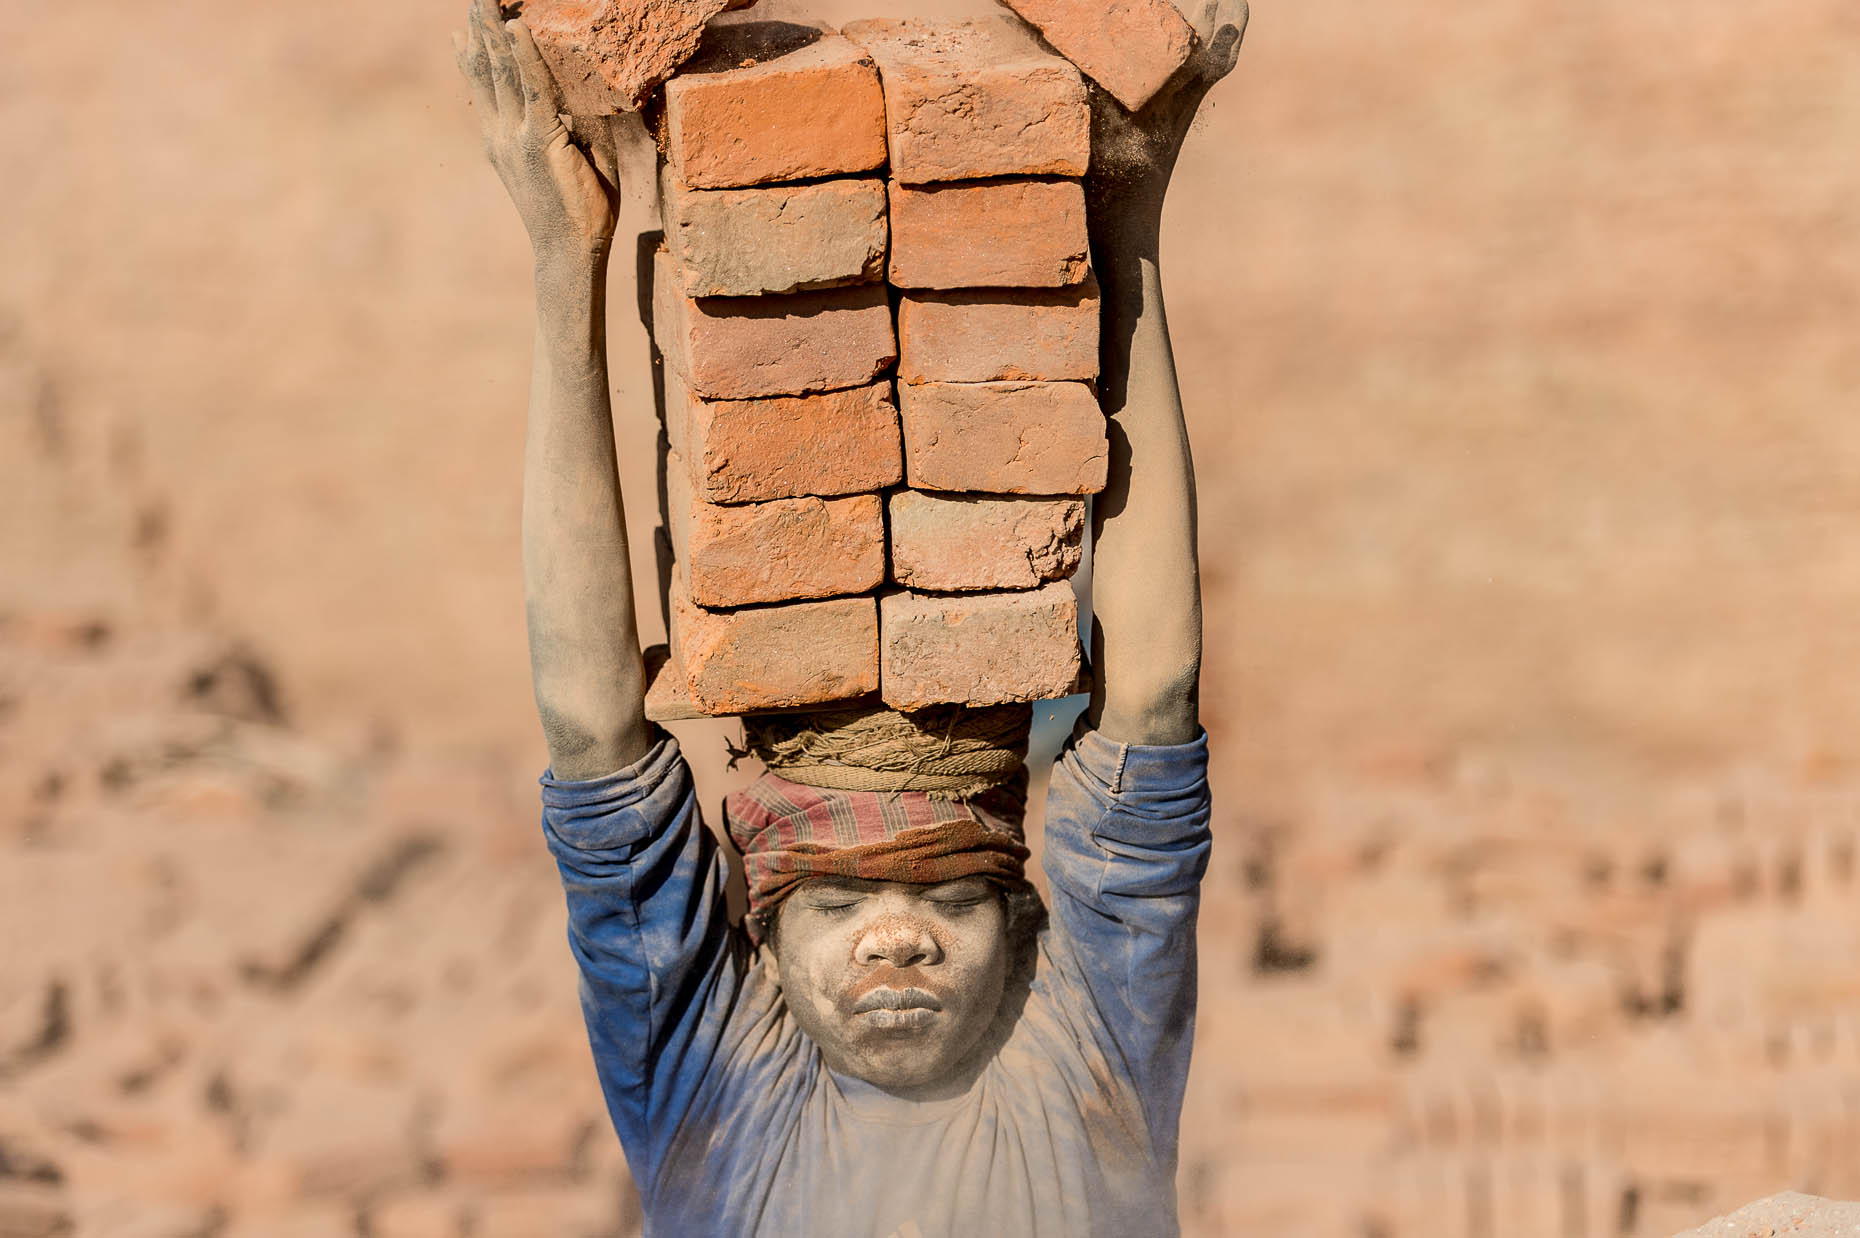 Boy-carrying-bricks-Nepal